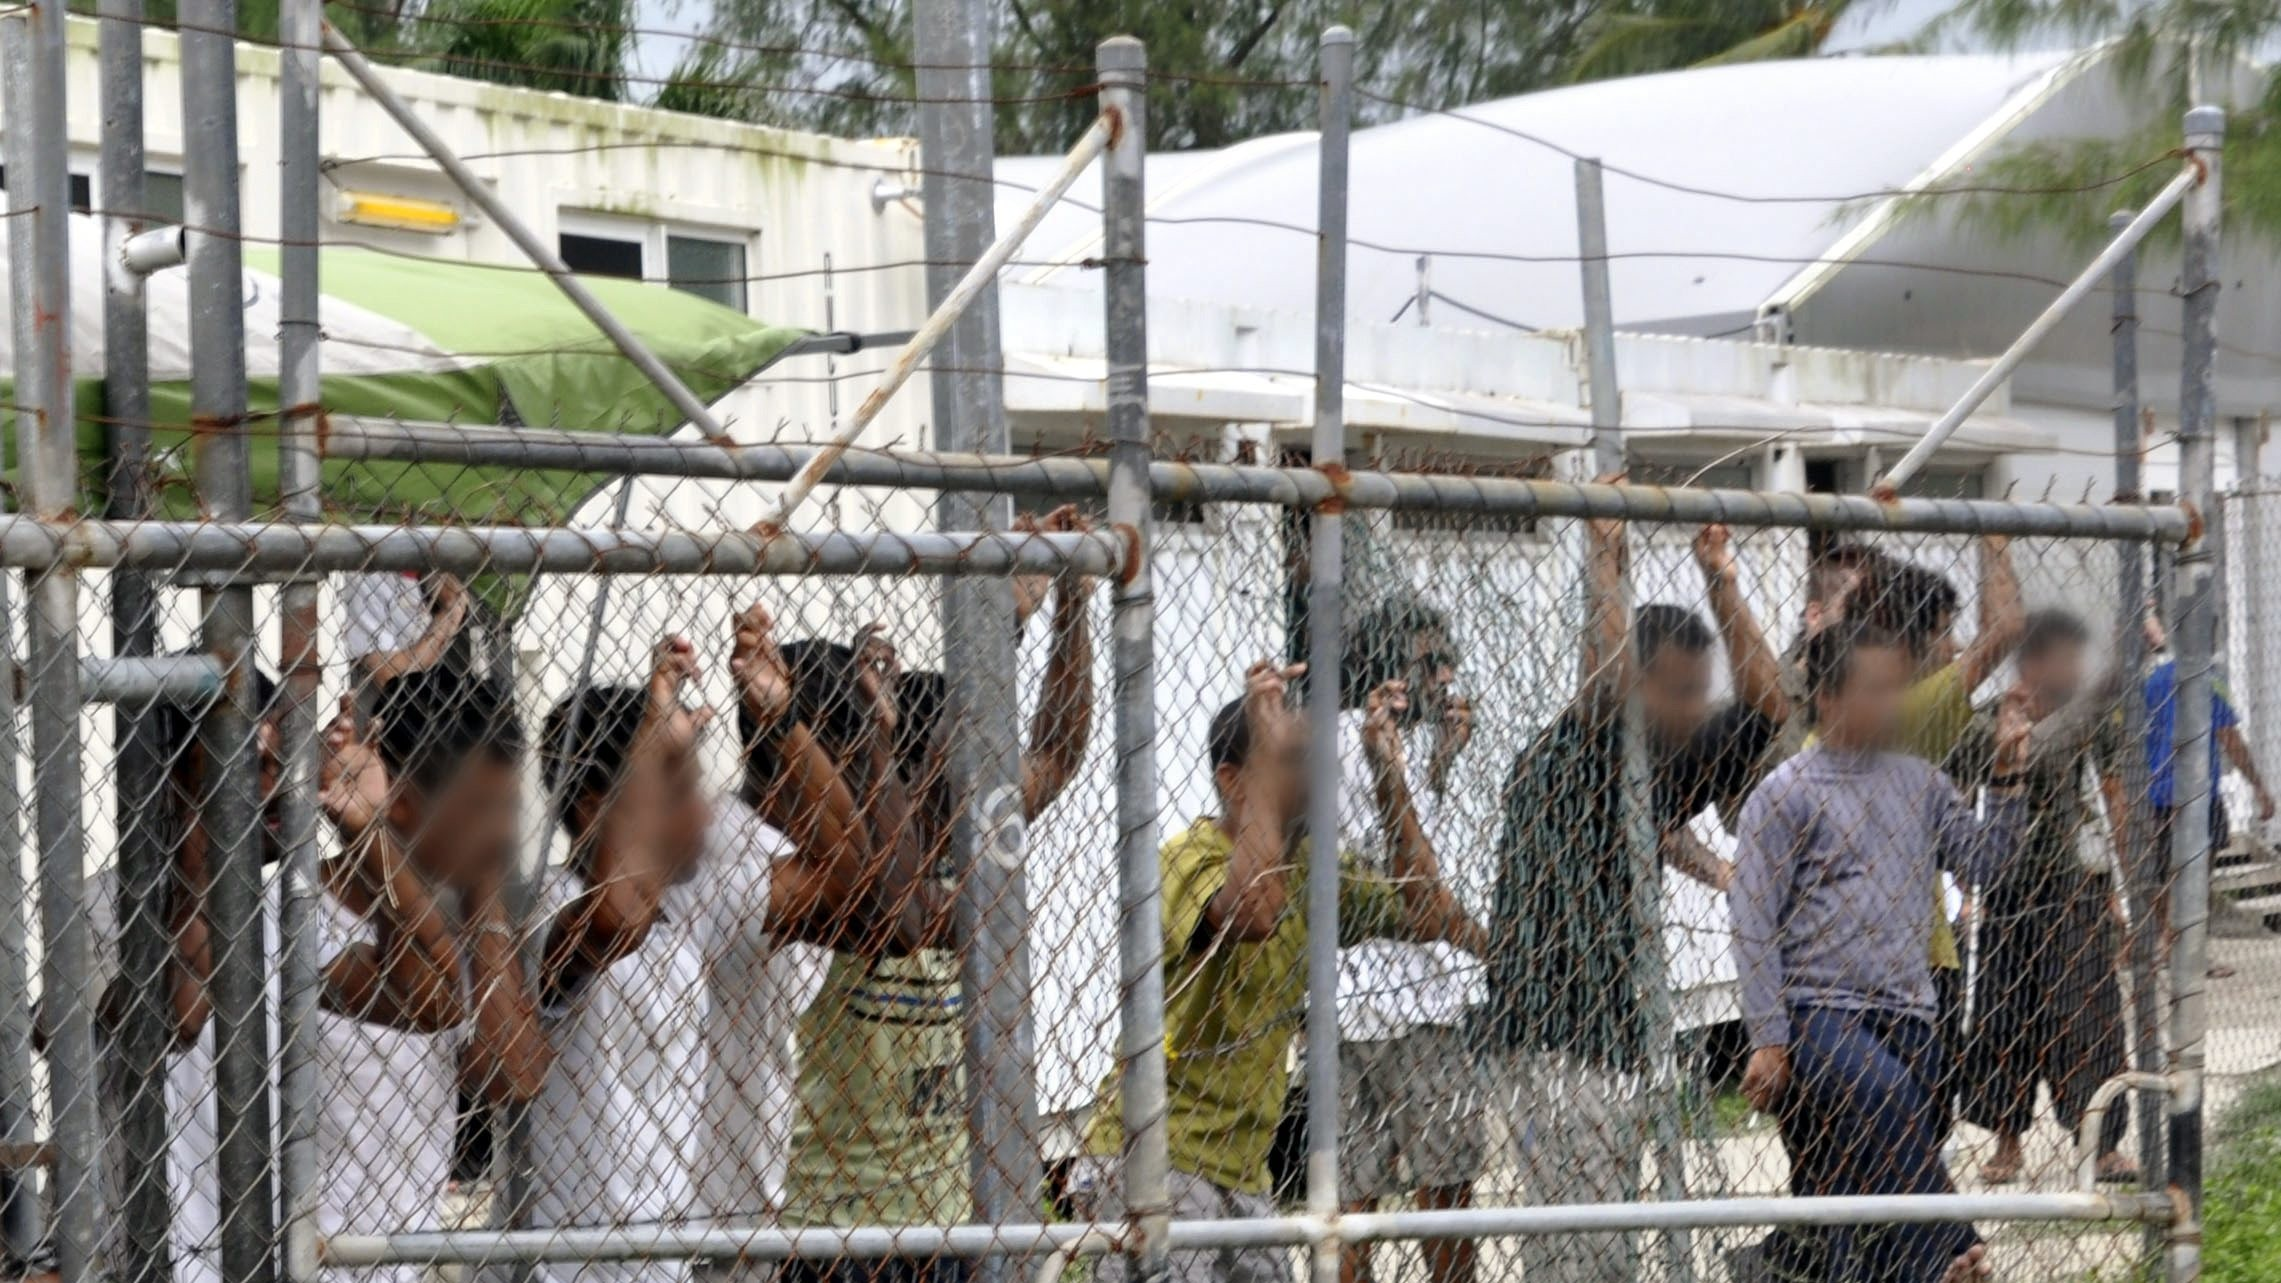 Australia says it will close one of its most notorious refugee detention centers